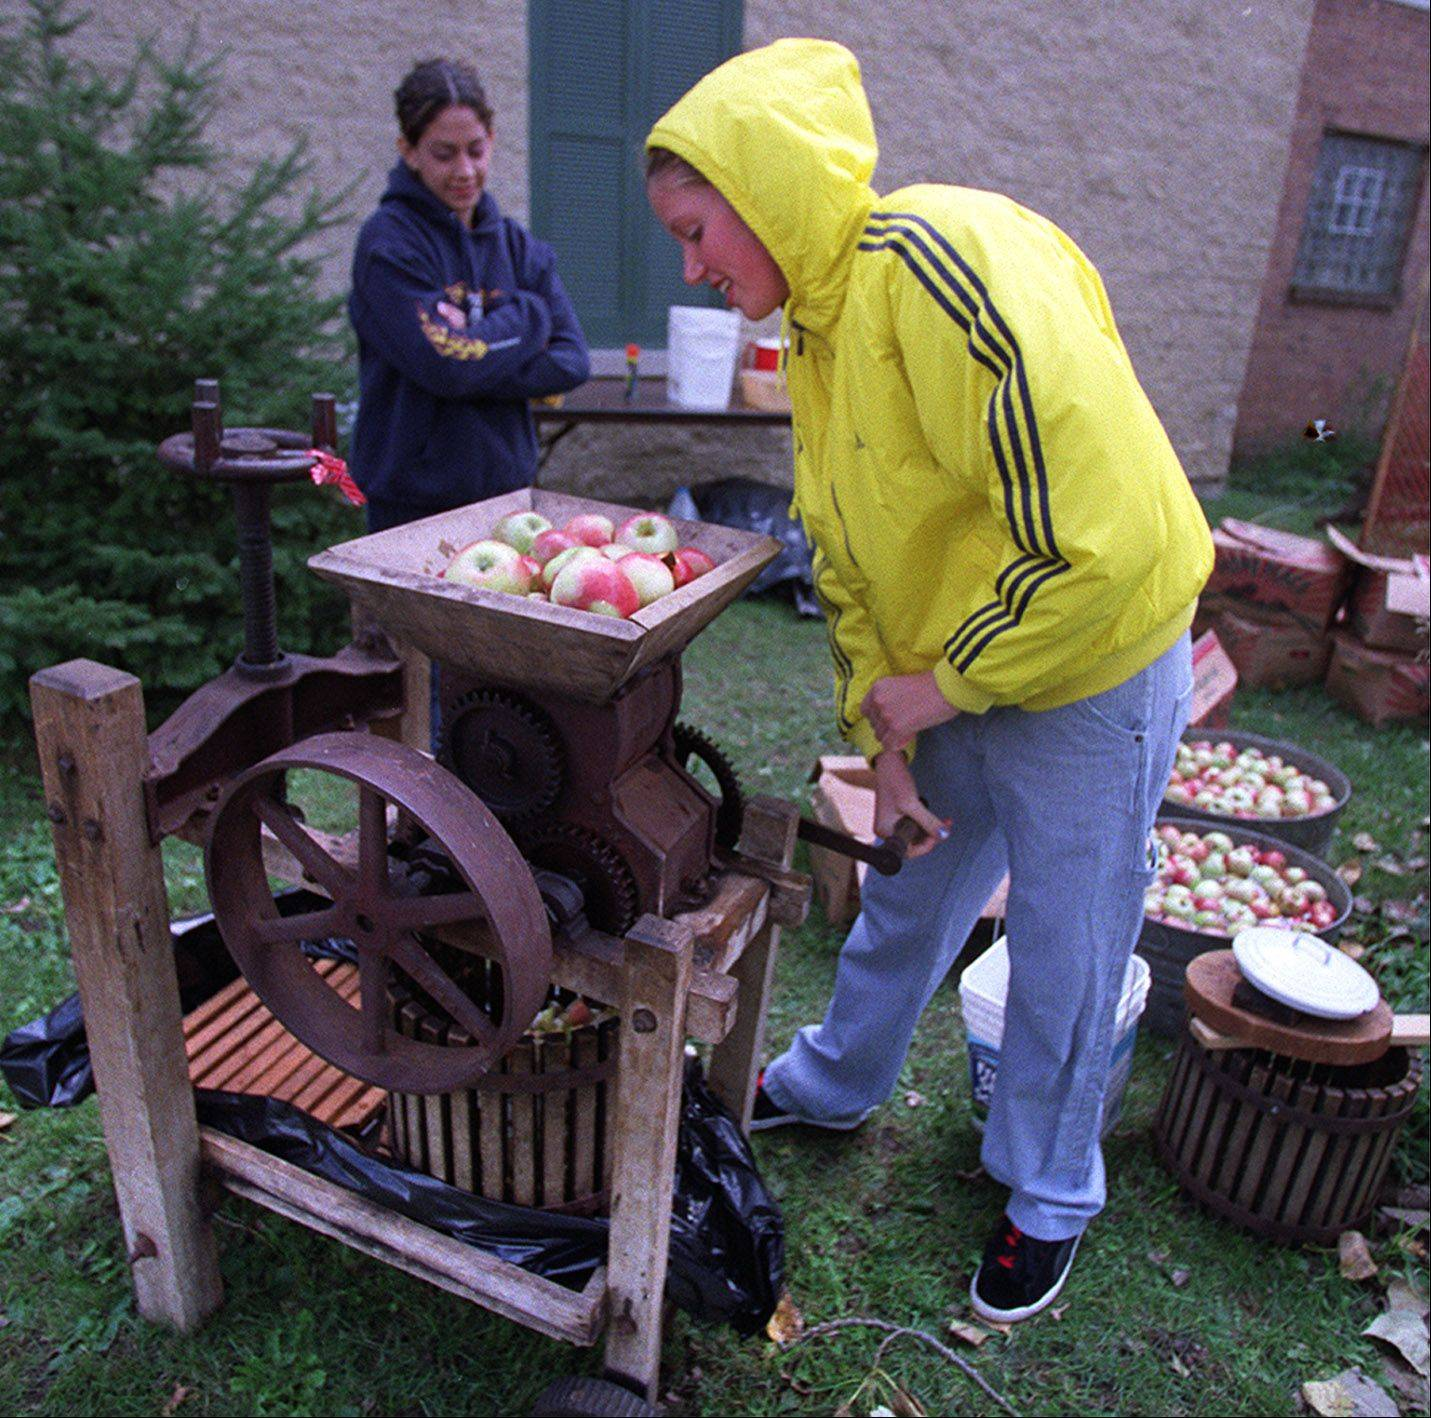 Visitors to McHenry County Historical Society's Cider Fest can watch how apples are ground up to make cider.